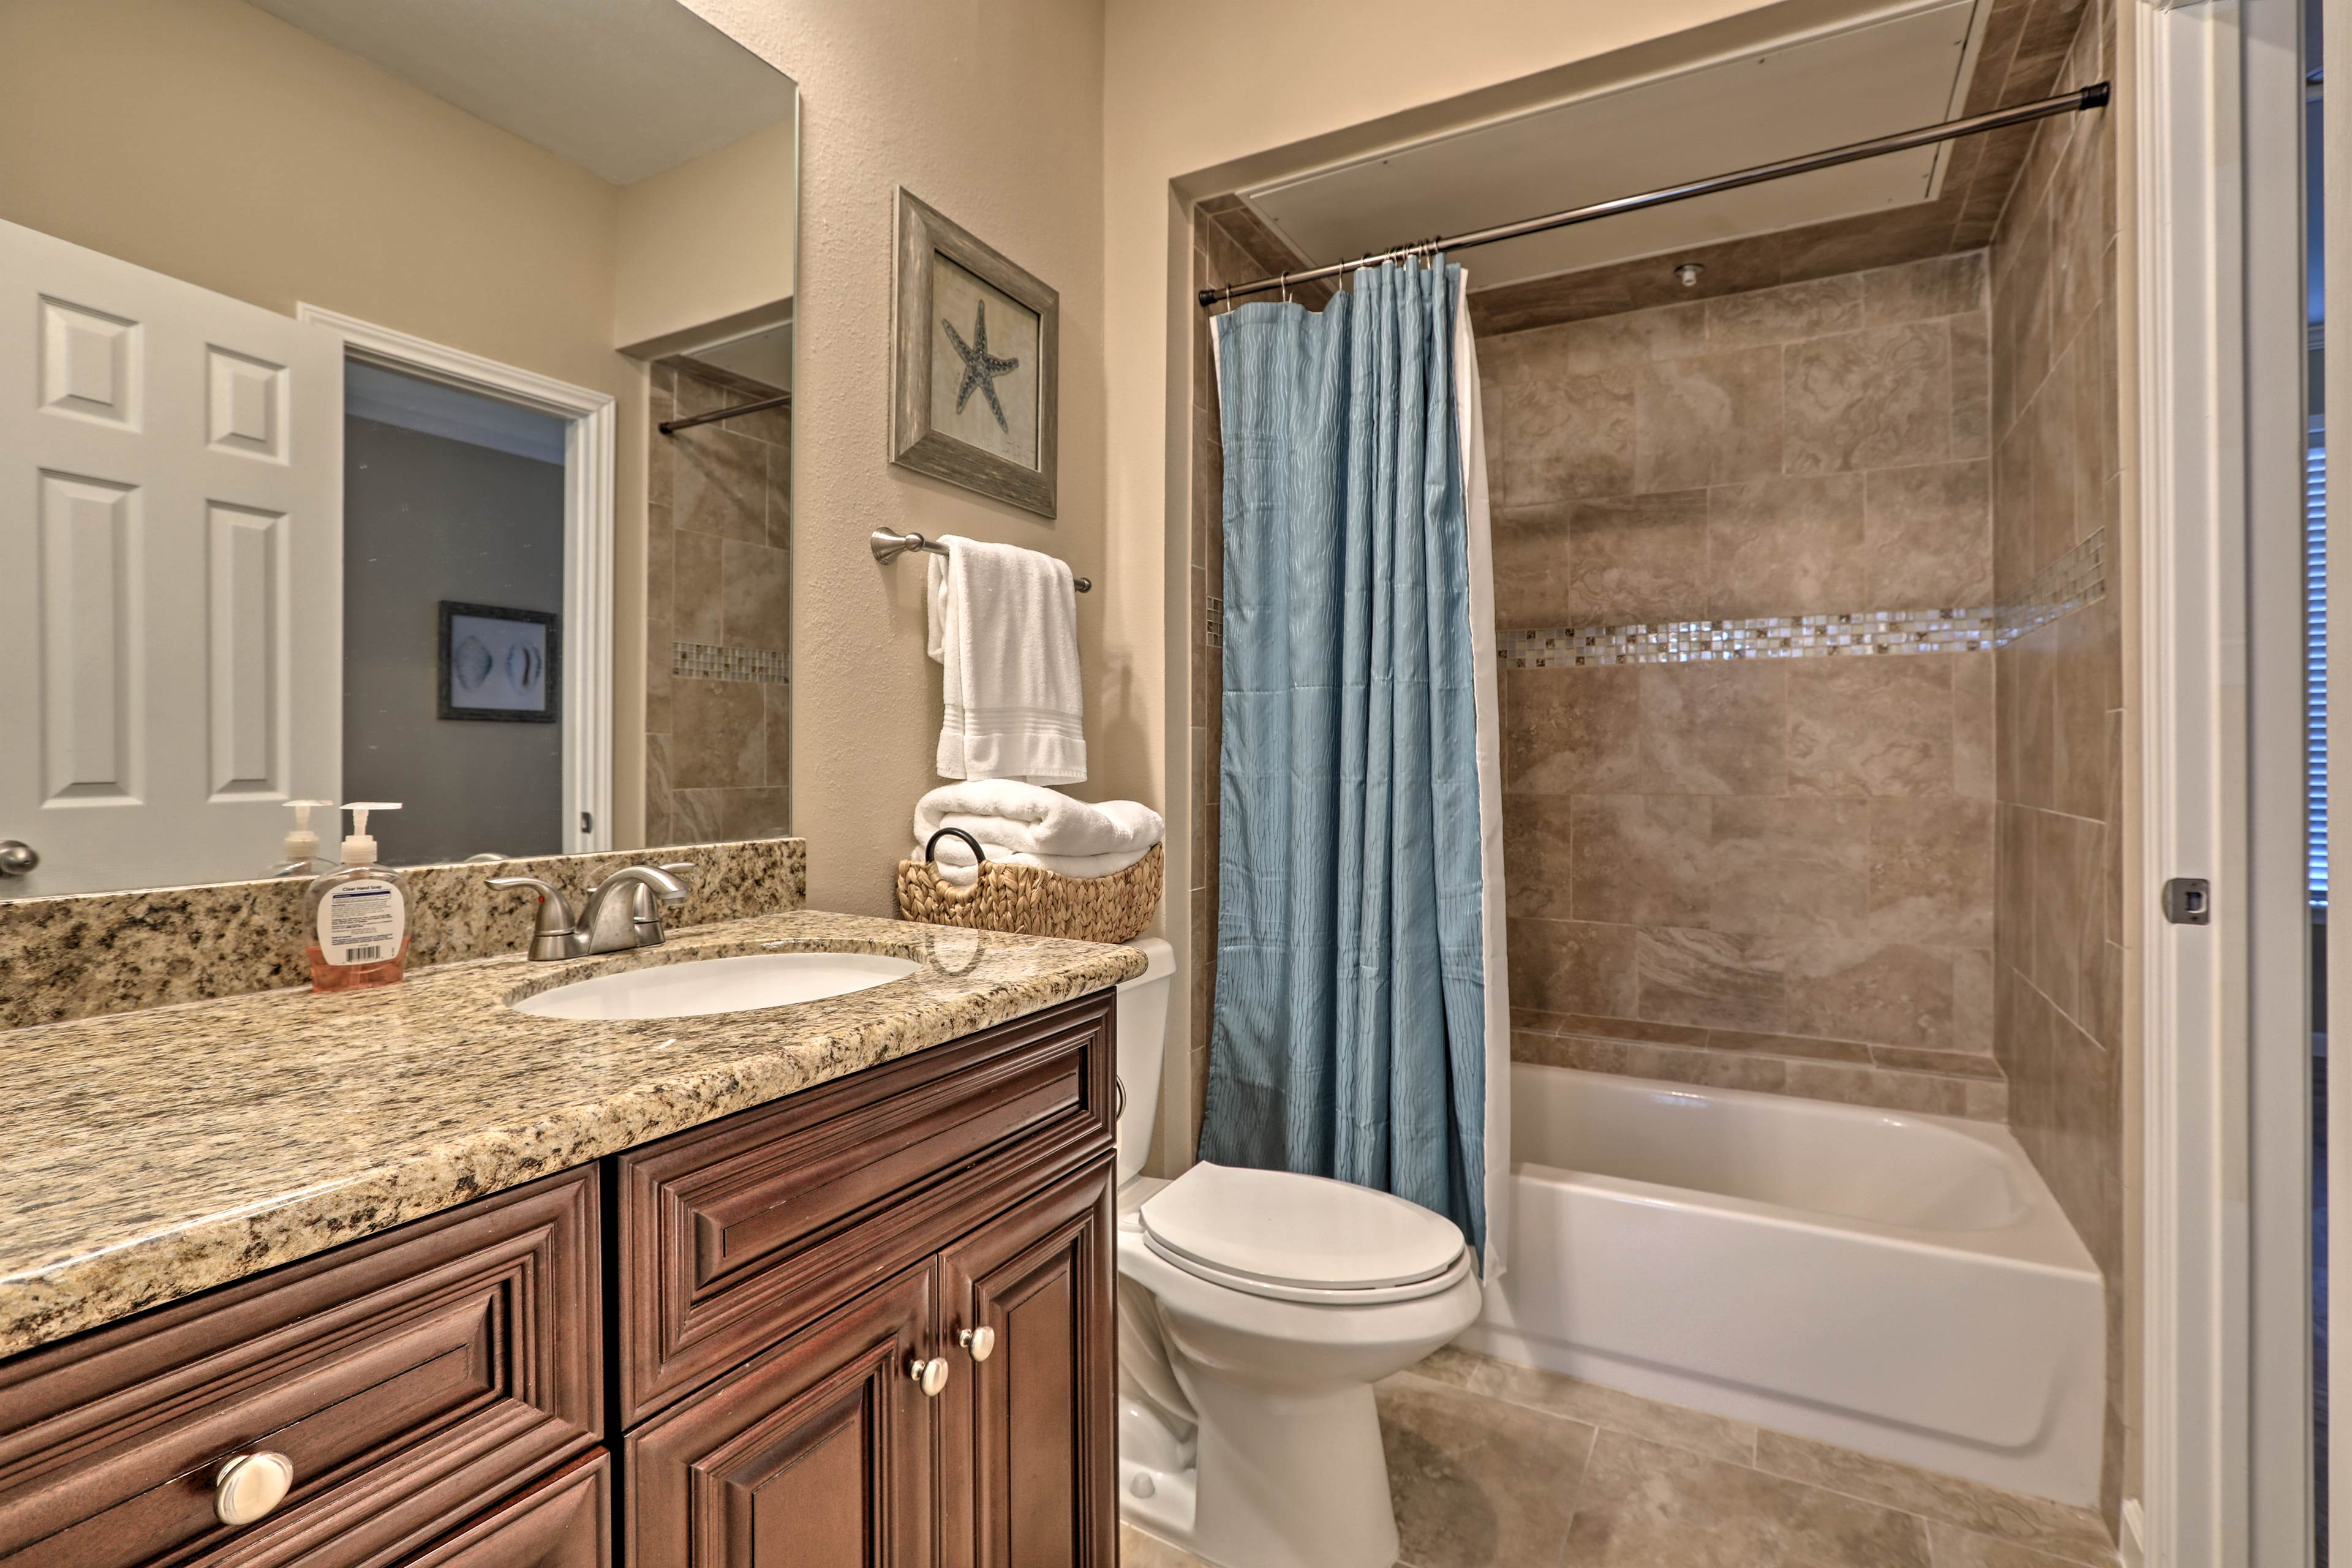 The elegant bathroom is a full with a shower/tub combo.